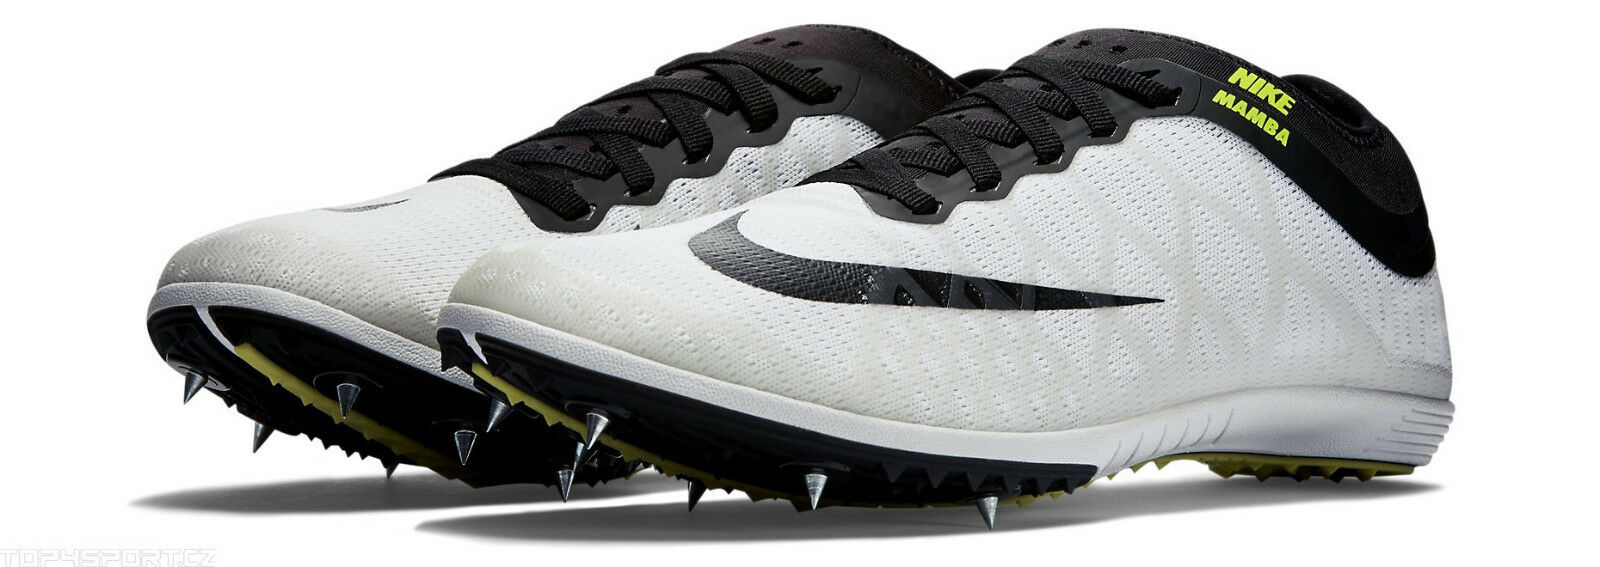 Nike  Zoom Mamba 3 Steeplechase Track scarpe Dimensione 10 Style 706617 -106 MSRP  ordinare on-line